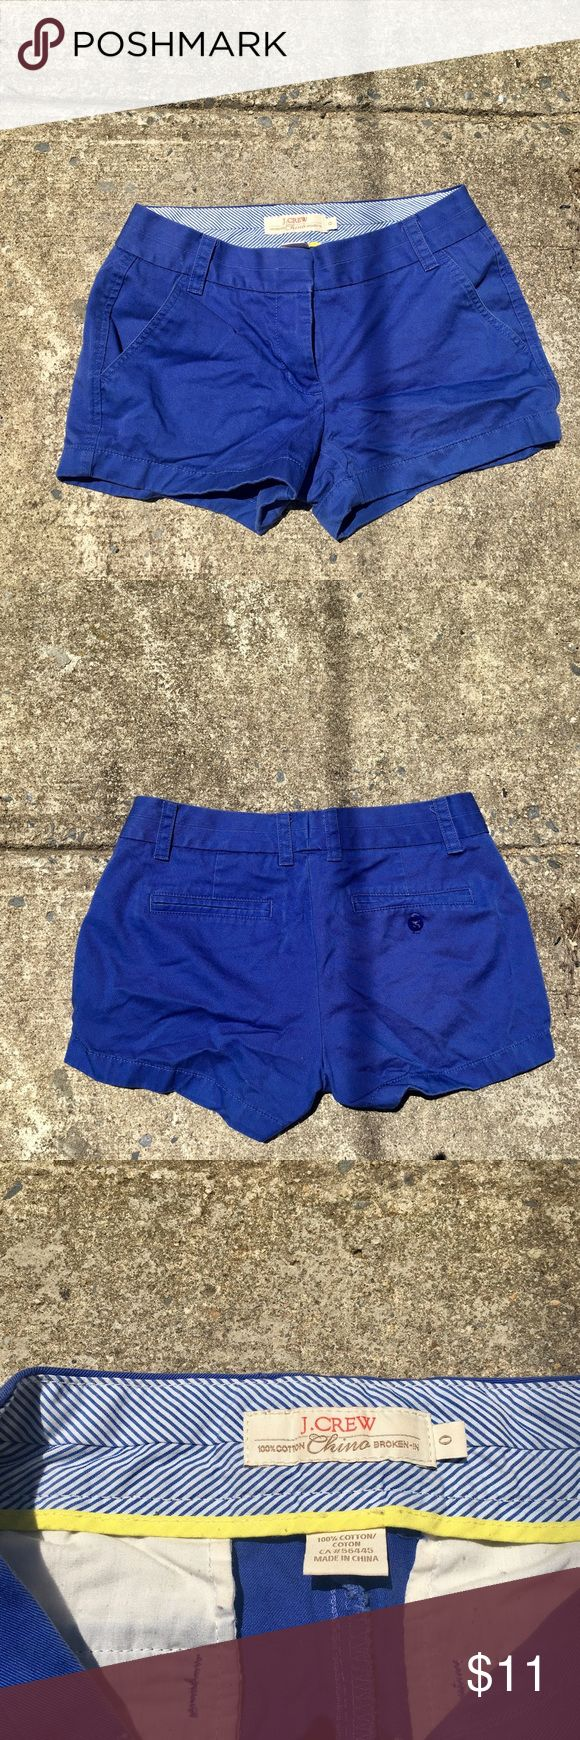 """J. Crew Broken In Chino Shorts Size 0 Cobalt blue shorts from J. crew. Gently used.  Size 0. 3"""" inseam. J. Crew Shorts"""